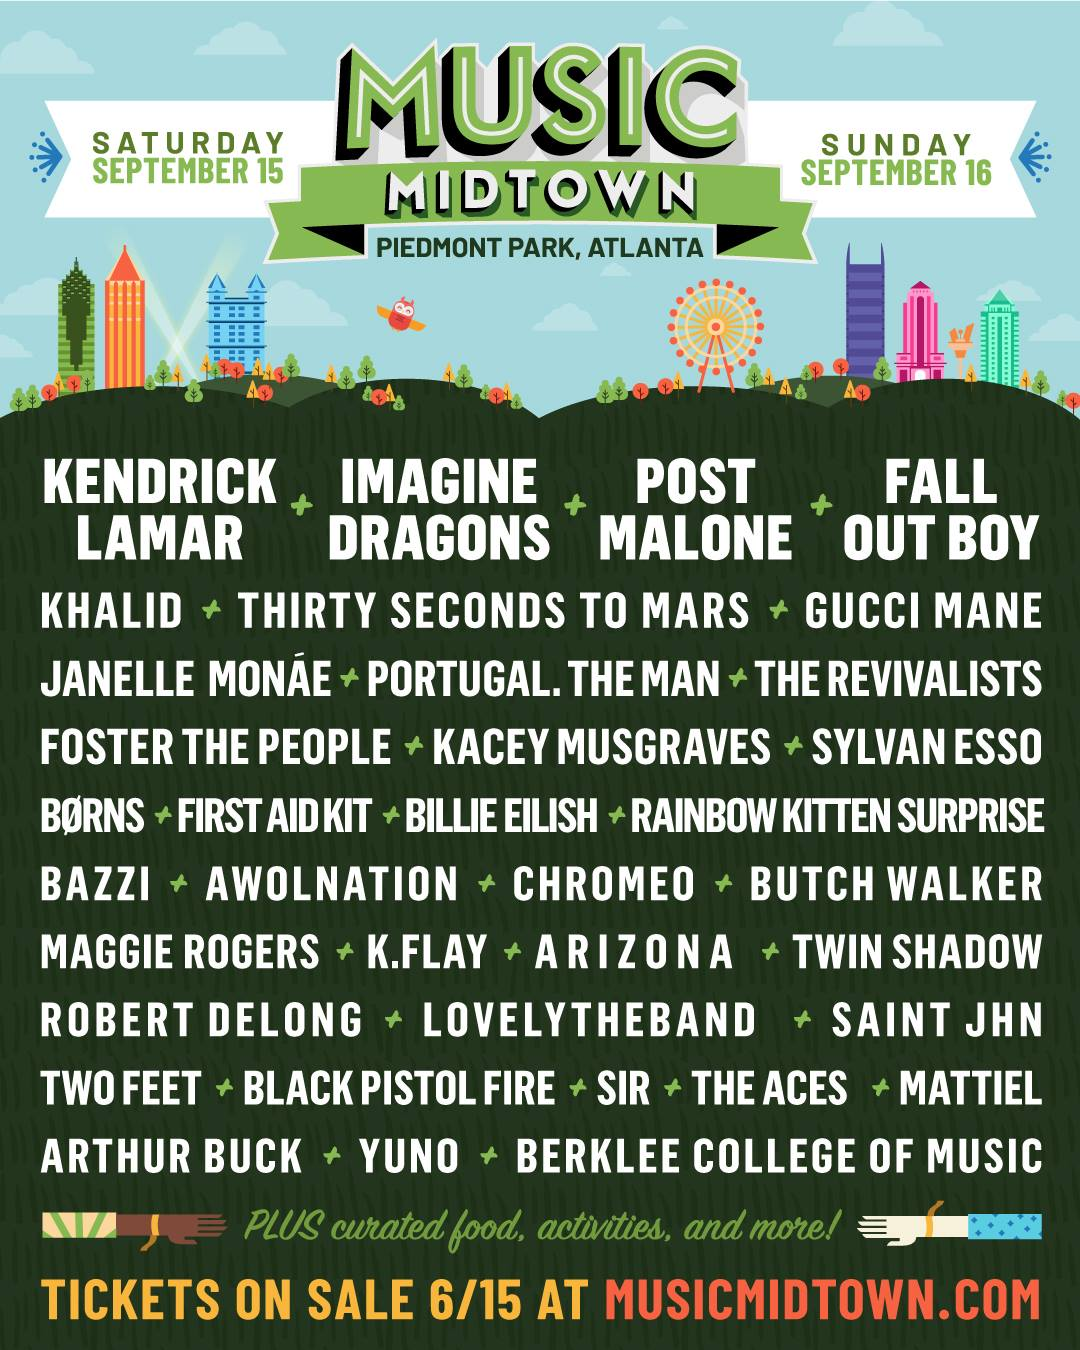 Music Midtown 2018 Lineup